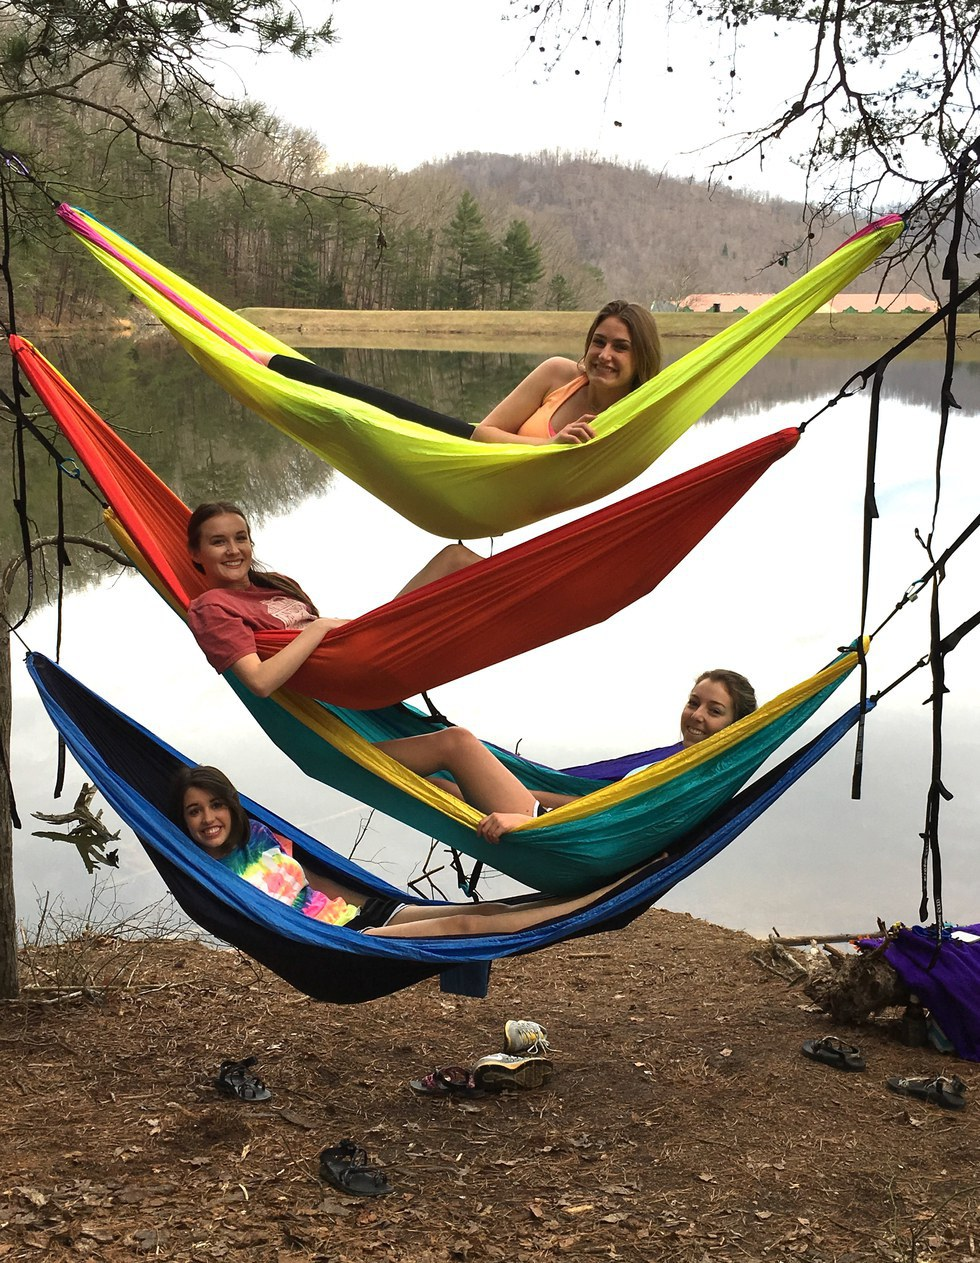 eno hammocks are made by eaglesnest outfitters and run from about  60 to  100 depending on the size and how fancy you are wanting to get  why you need an eno hammock  rh   theodysseyonline